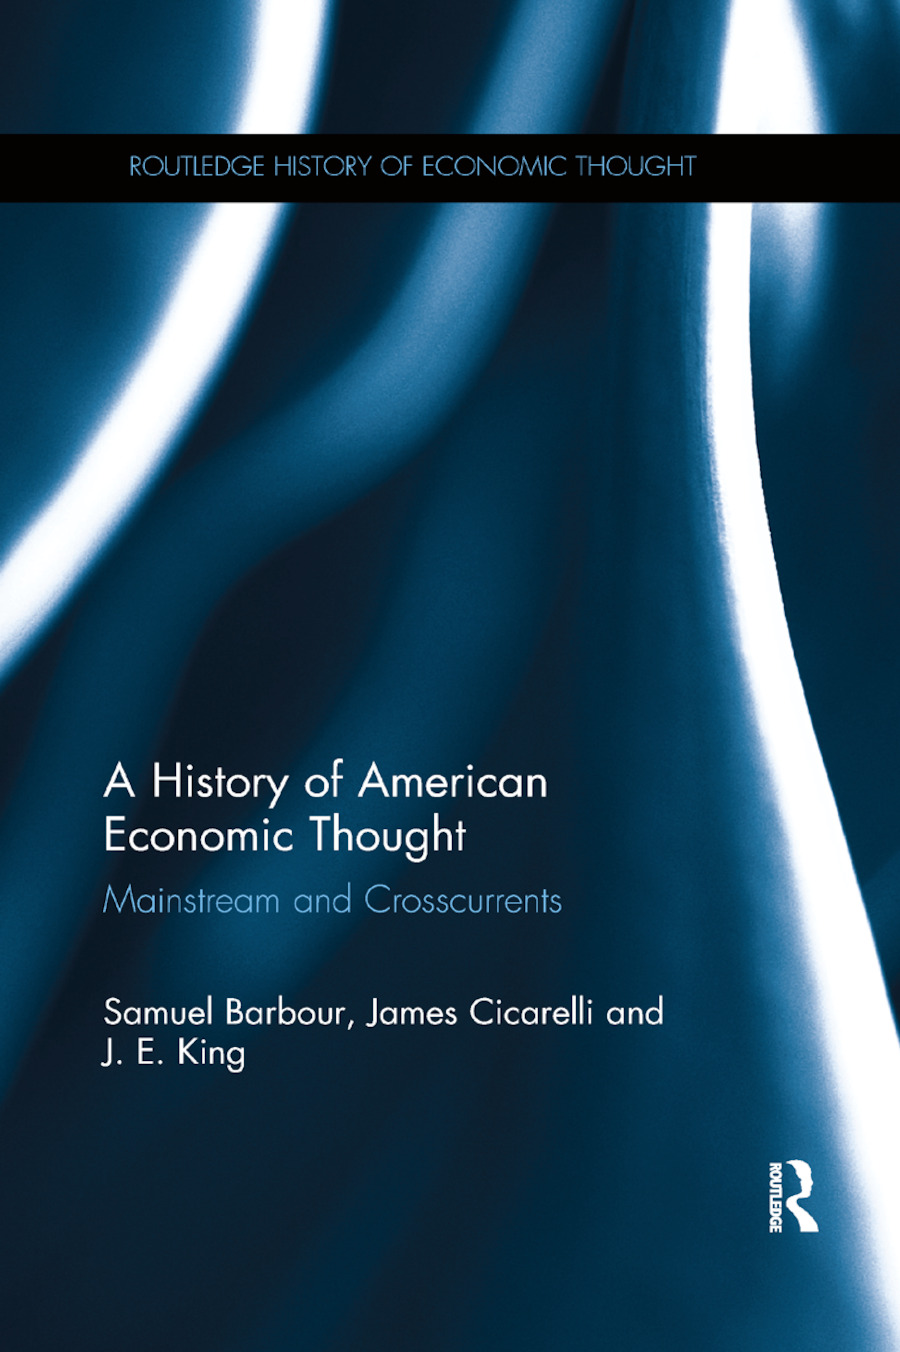 A History of American Economic Thought: Mainstream and Crosscurrents book cover